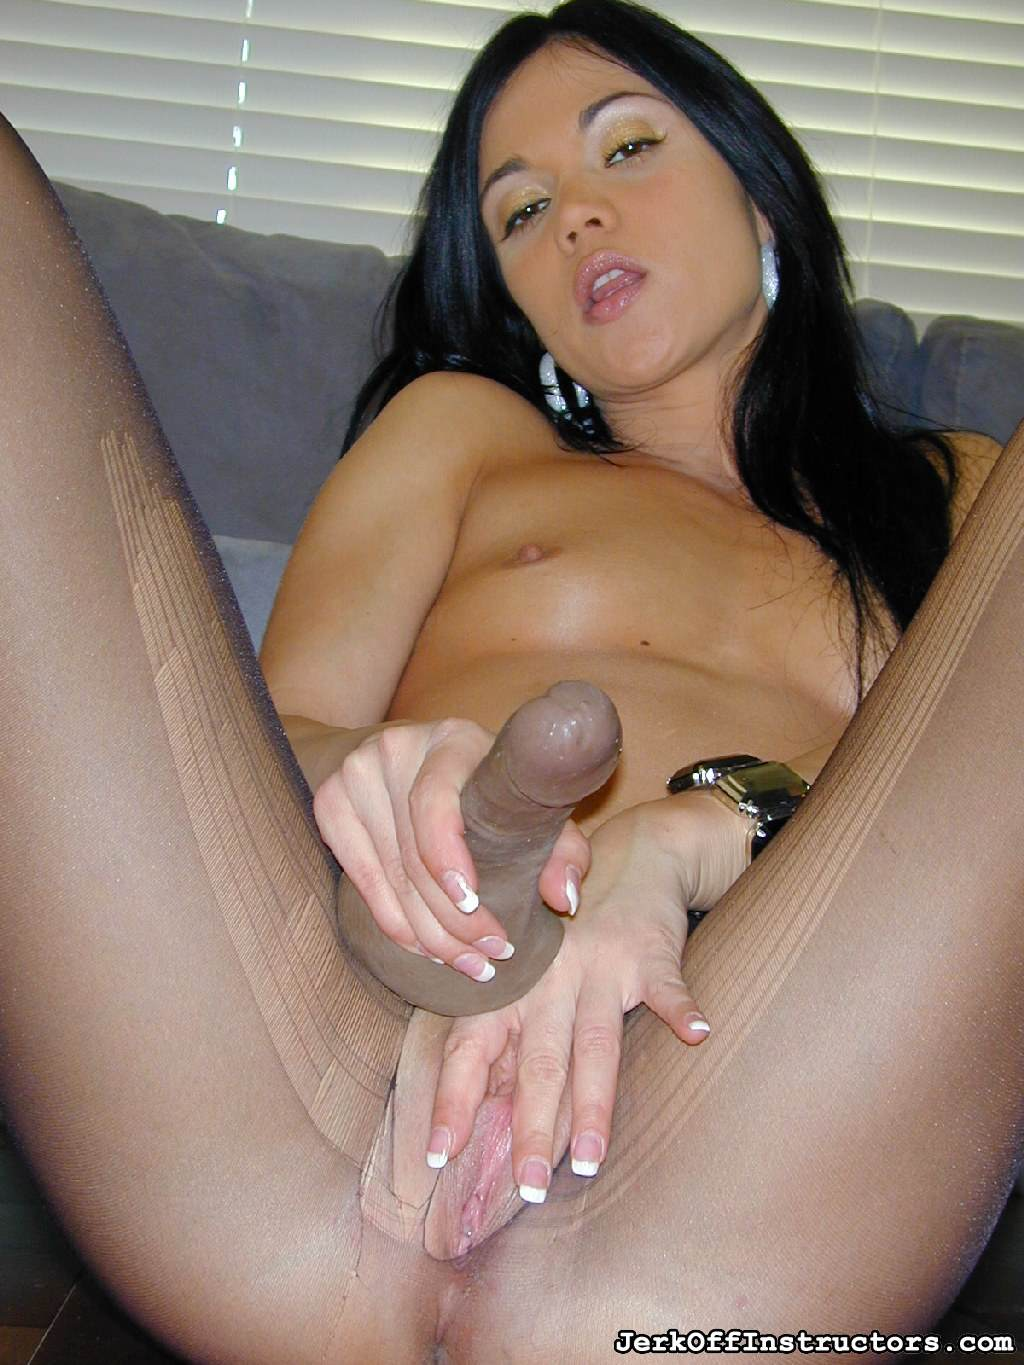 Picture #6 of Goddess is pantyhose would better deal with rubber cock than with your tiny penis: watch her inserting the toy into the hole in the nylon